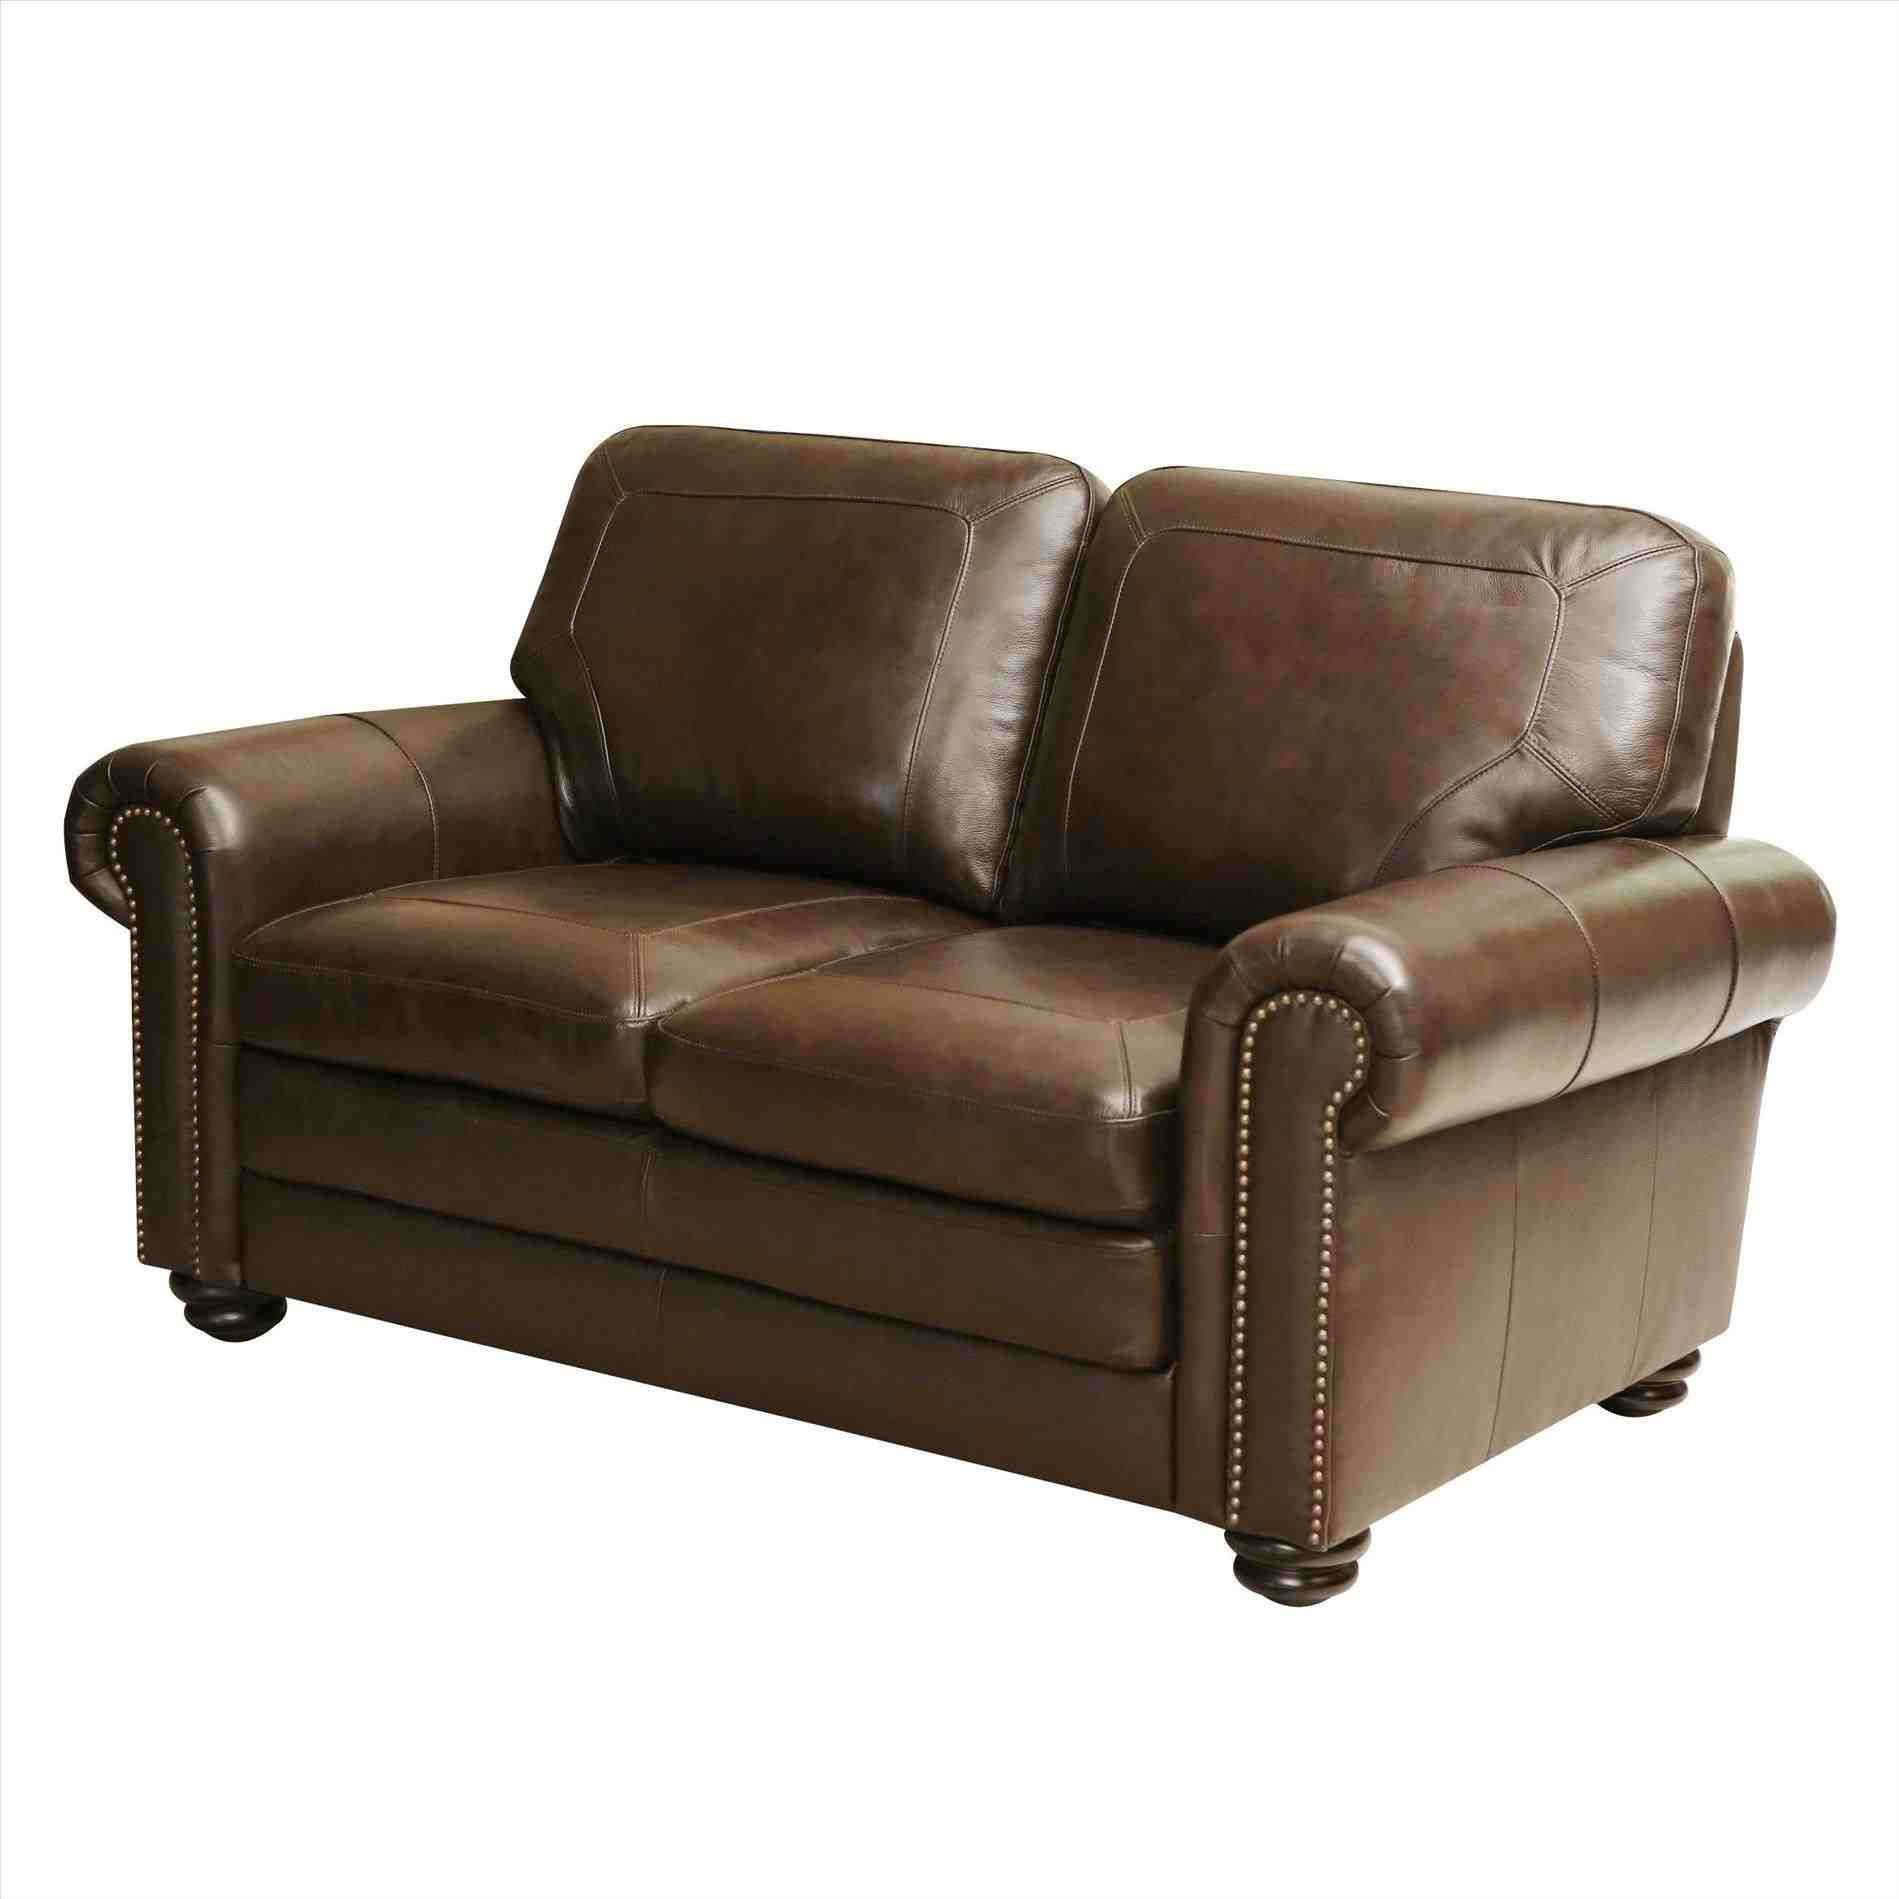 Leather Sofas Bradford With